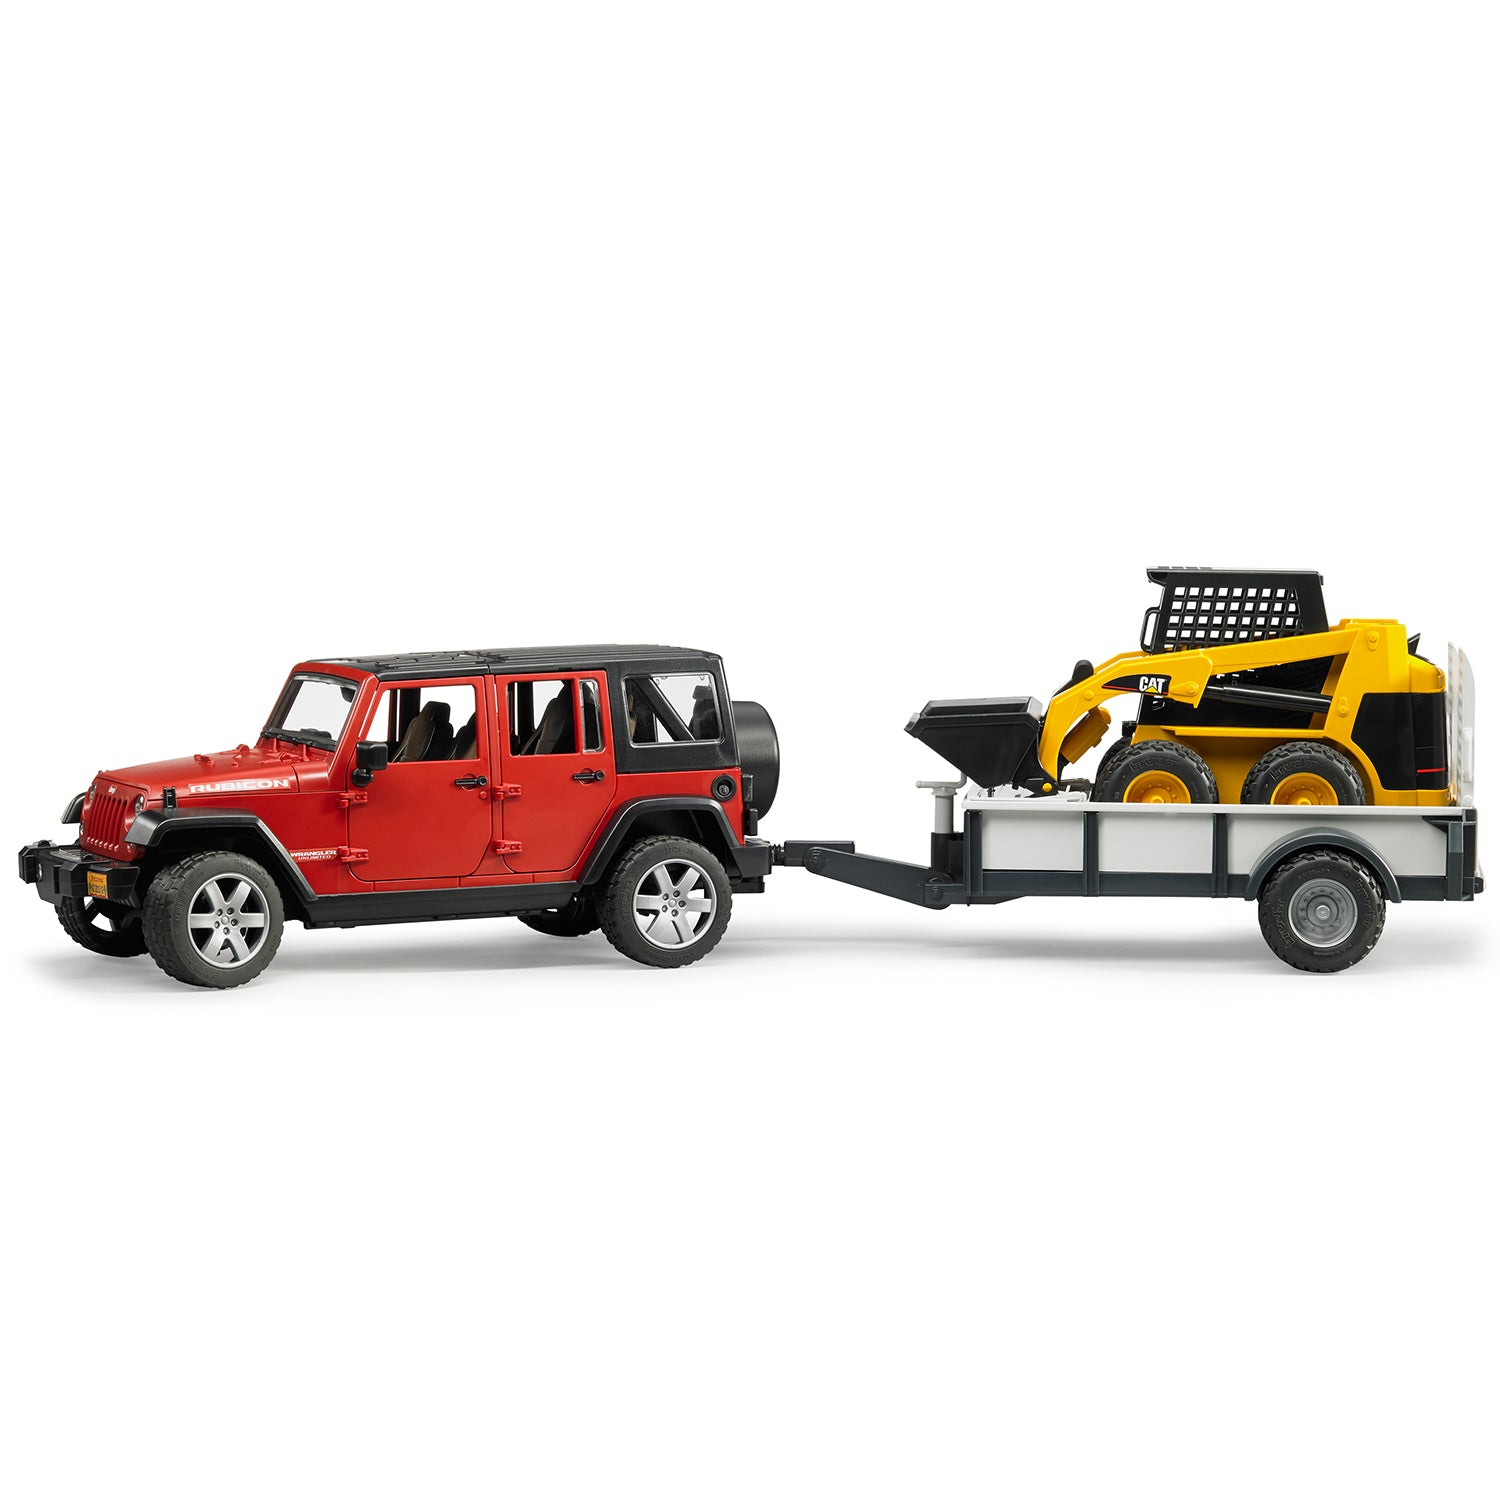 Jeep Wrangler Unlimited Rubicon with Trailer + CAT Skid Steer Loader